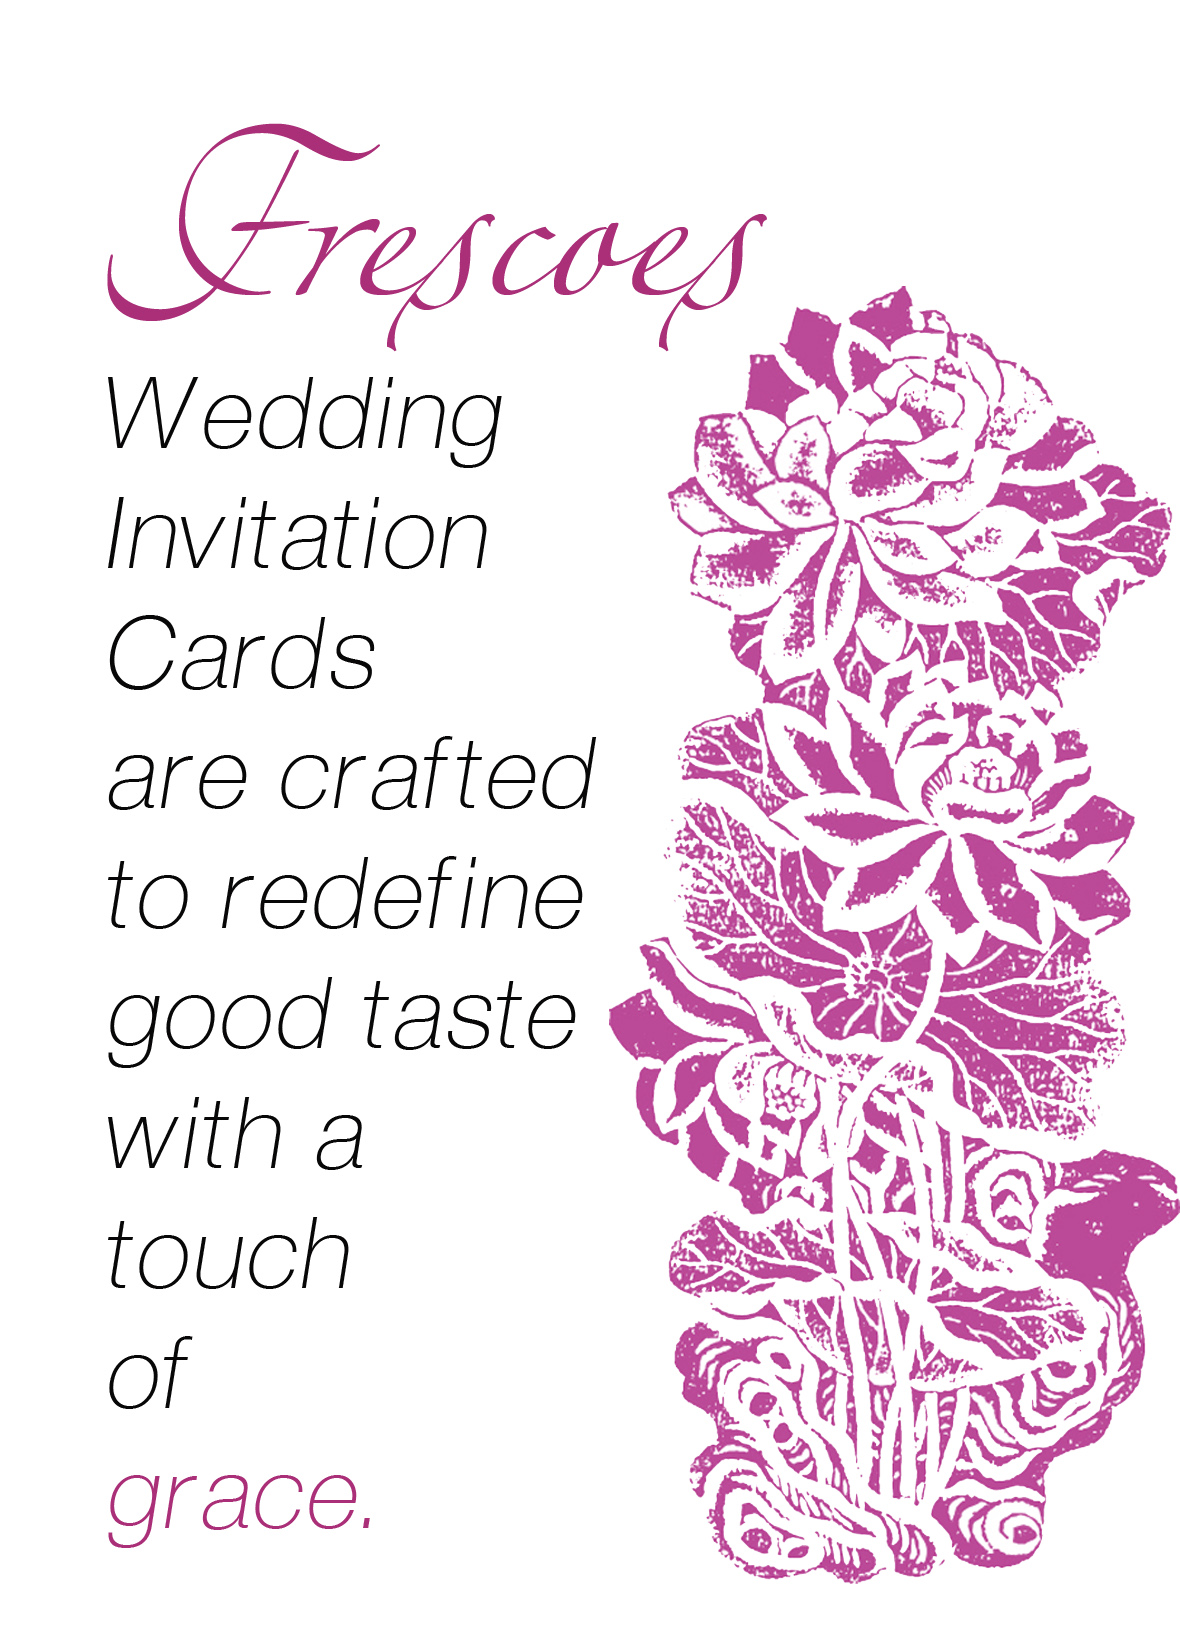 Kolkata the wedding hub of east india designer hindu marriage cards sample kolkata marwari wedding invitation cards stopboris Gallery